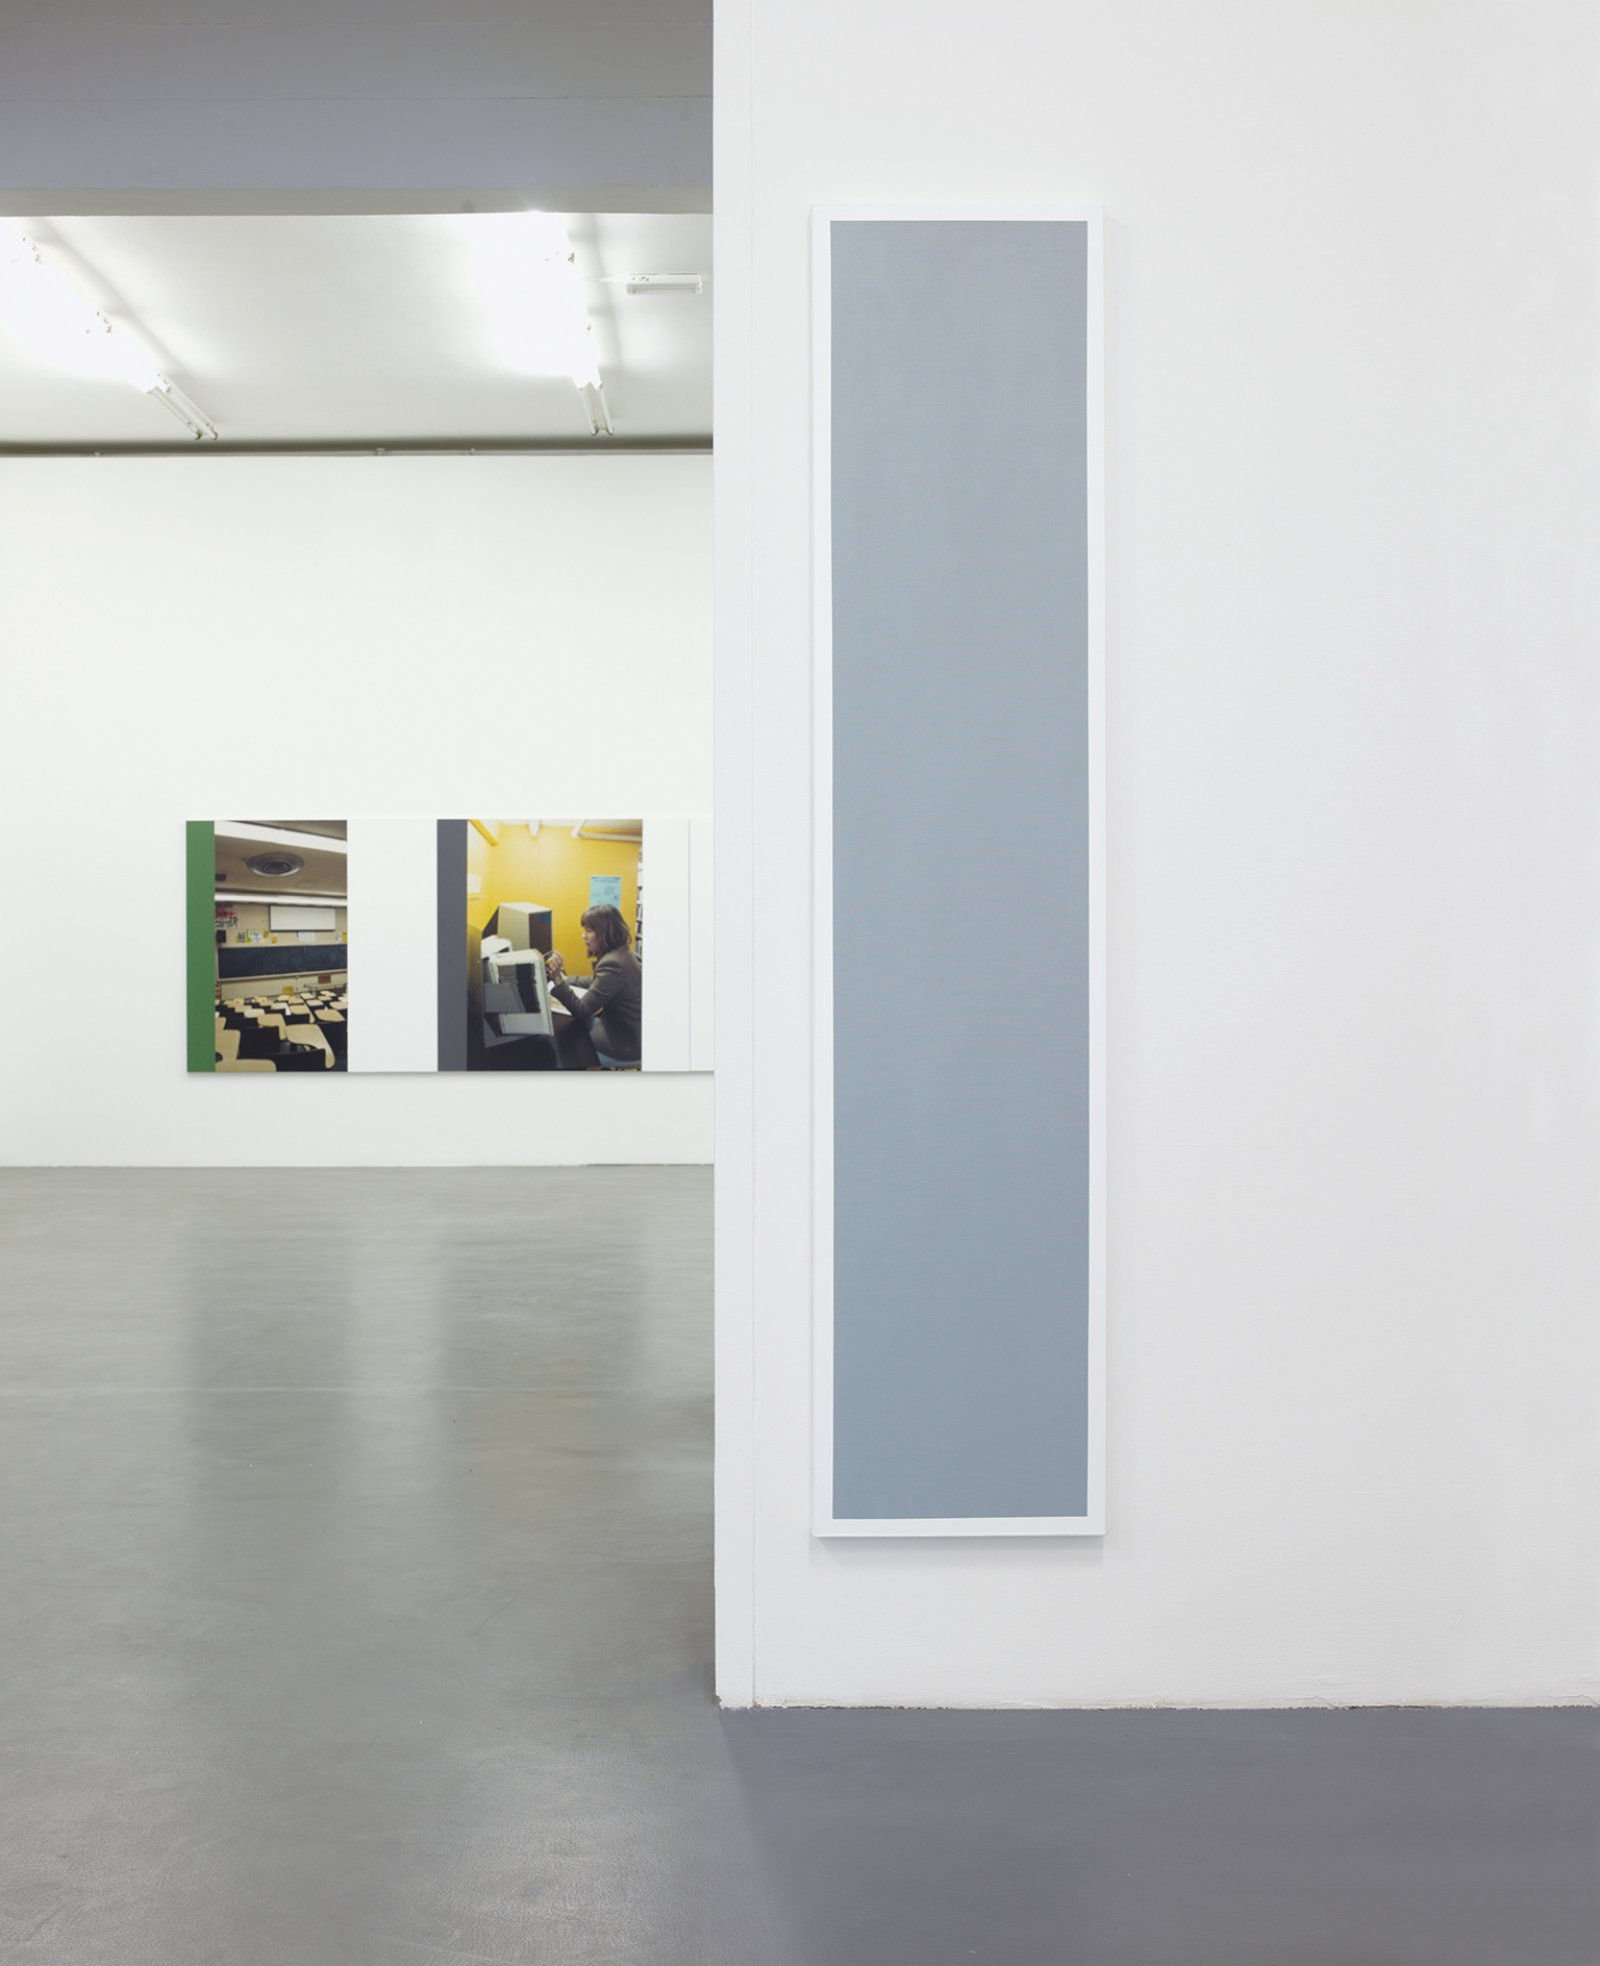 ​​​​Ian Wallace, ​Untitled (Grey Monochrome with White), 1967–2008, acrylic on canvas, 90 x 20 in. (228 x 50 cm). Installation view, ​A Literature of Images​, Witte de With, Rotterdam, 2008​​​​​ by Ian Wallace